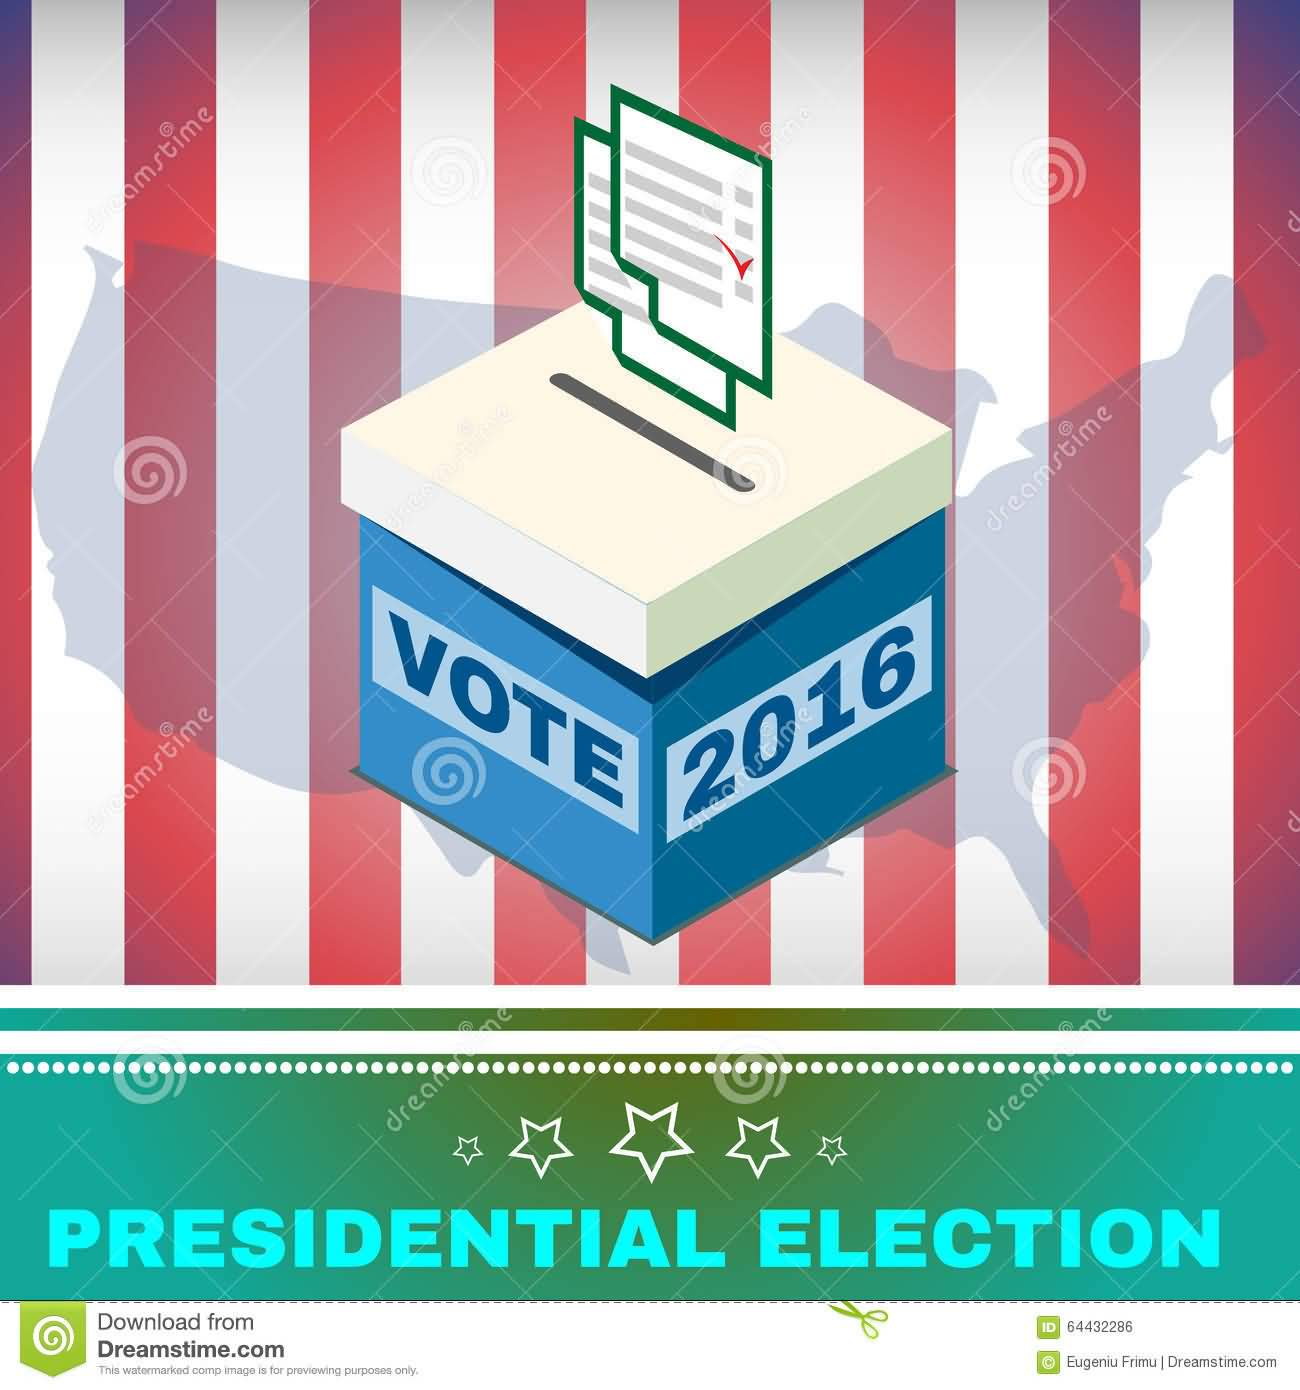 Presidential election 2016 date